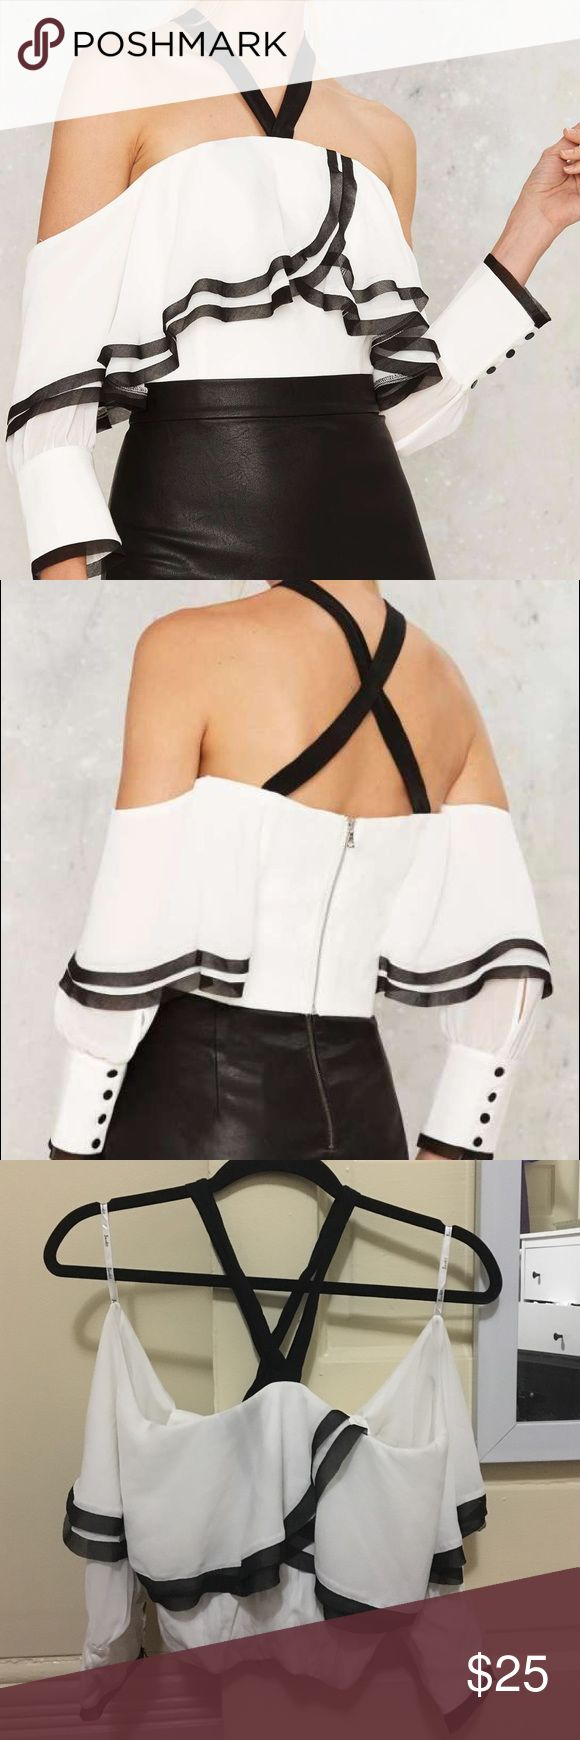 Nasty Gal Matador Off-The-Shoulder Top Size Small/6. The Matador Top features ruffly white details with black mesh trim, and shoulder straps that create a v at the neckline. The cuffs close wuth four black buttons and the back zips closed with a silver zipper. Polyester. Model is wearing a size S. Bardot Tops Blouses